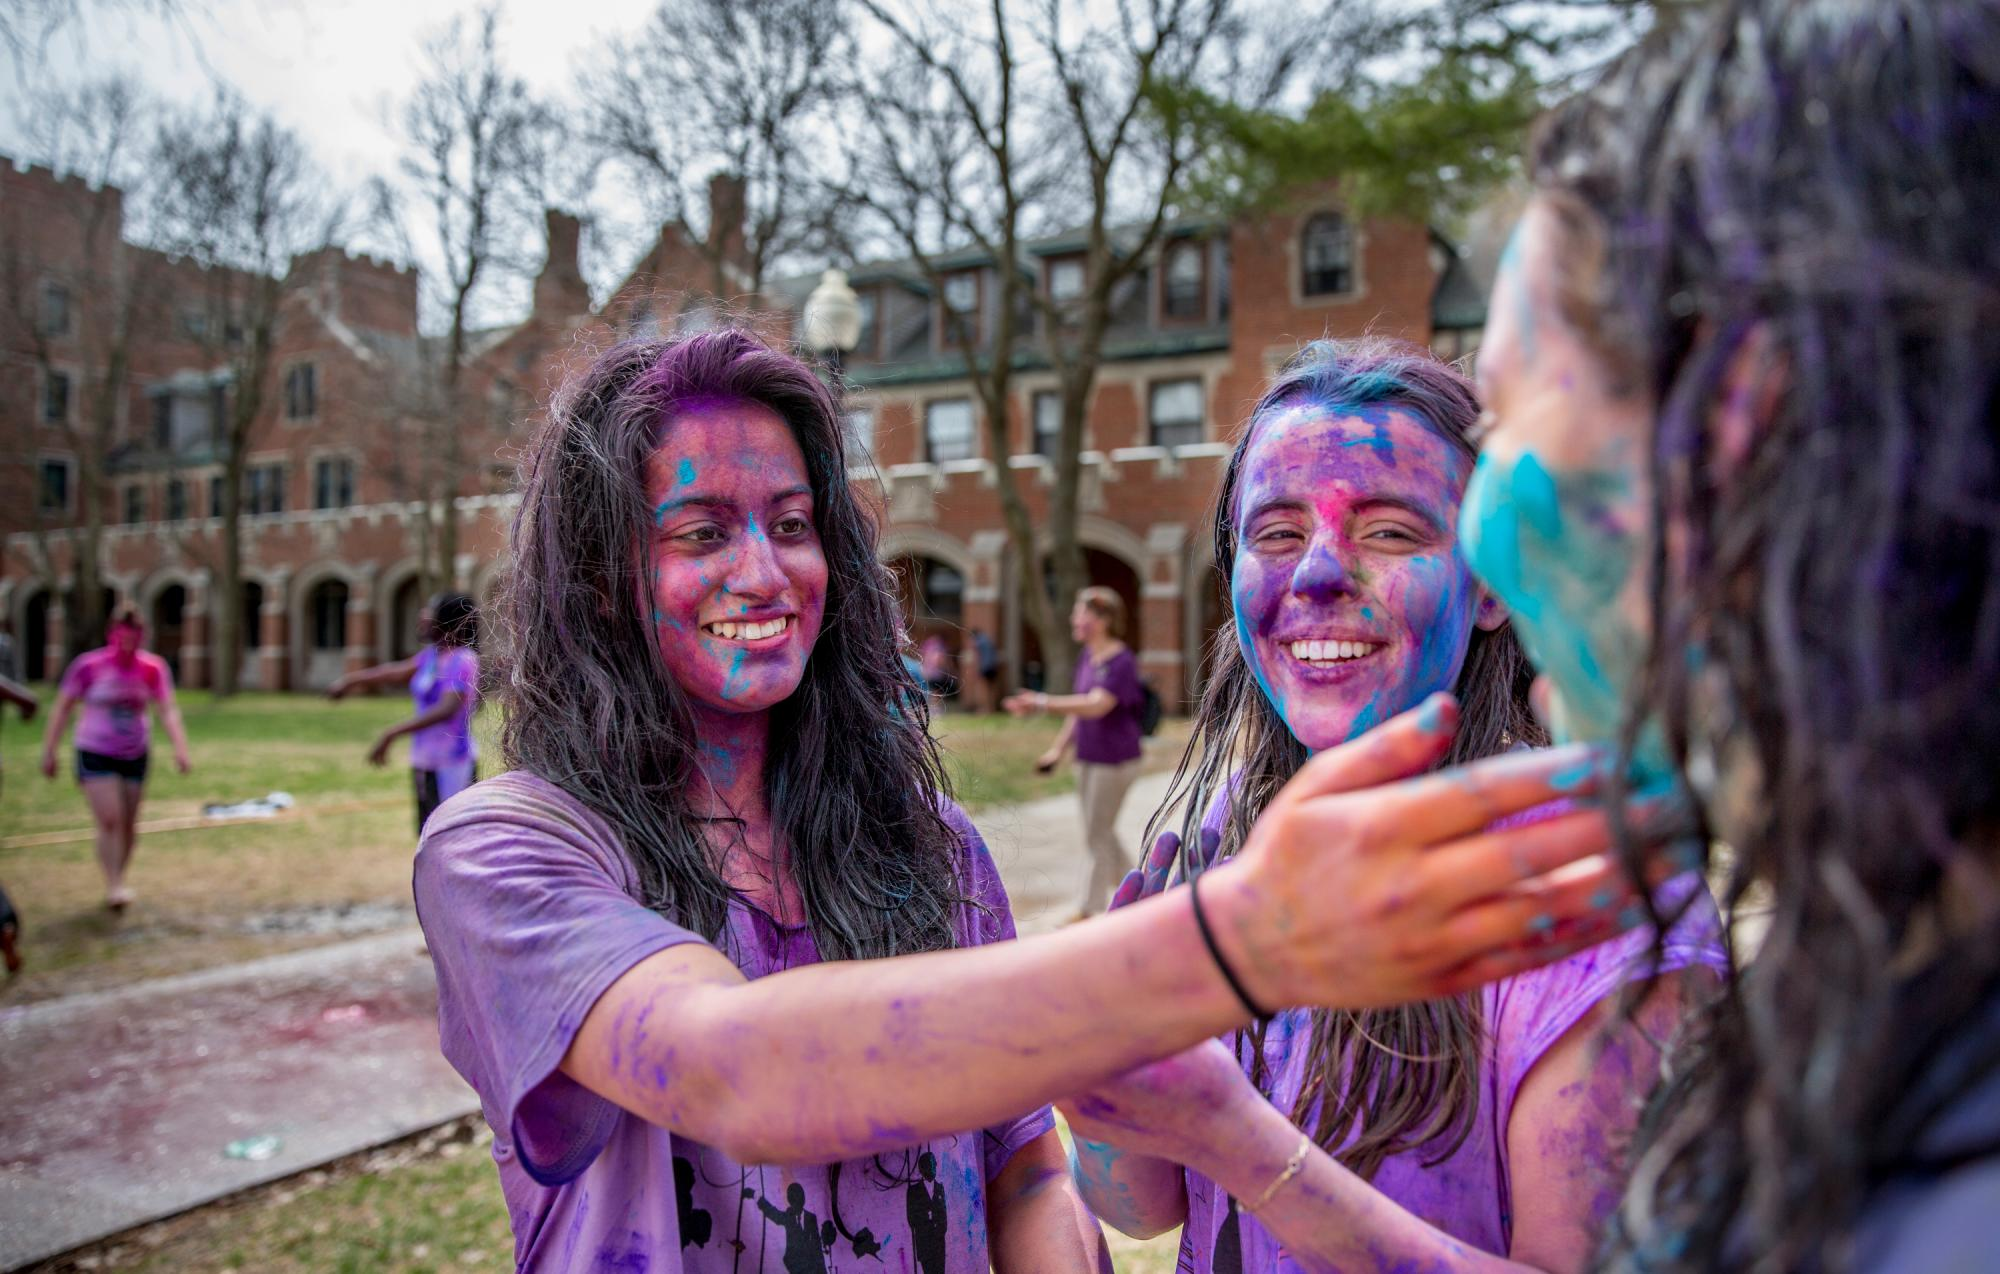 Students celebrate Holi, the Hindu festival of color